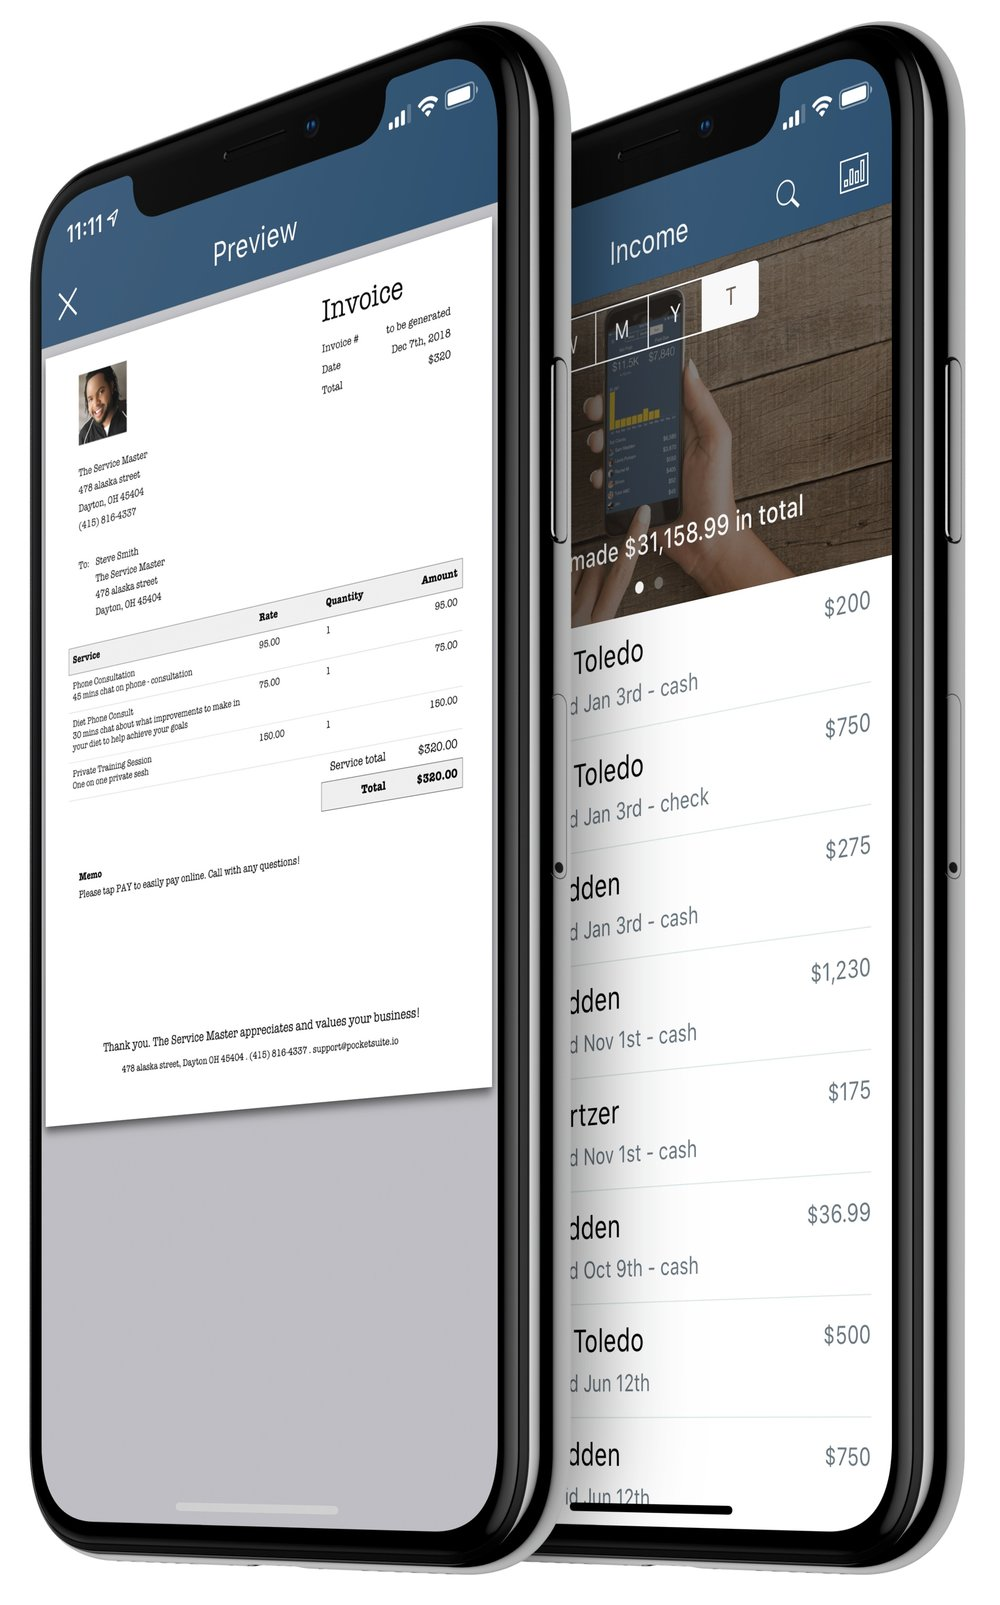 Accept Payments & Cashout Same Day - Invoice your clients with your custom imported forms or charge their credit card within the PocketSuite app with a low 2.7% Processing Fee. Track all owed payments and what has been paid.Learn More